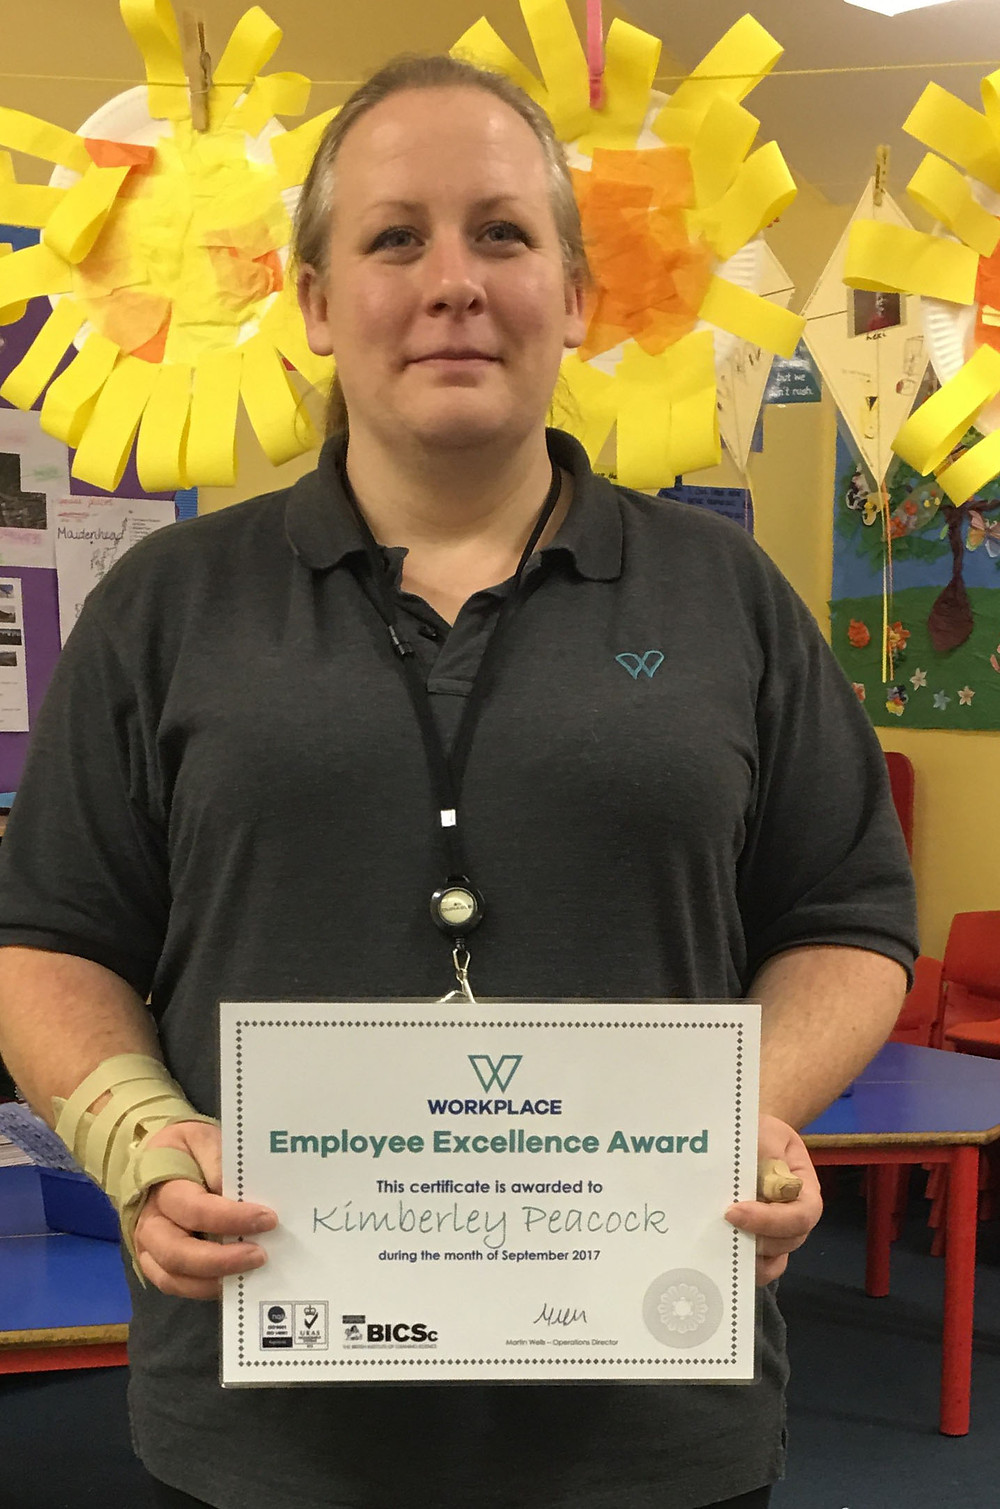 Employee Excellence Award - September 2017